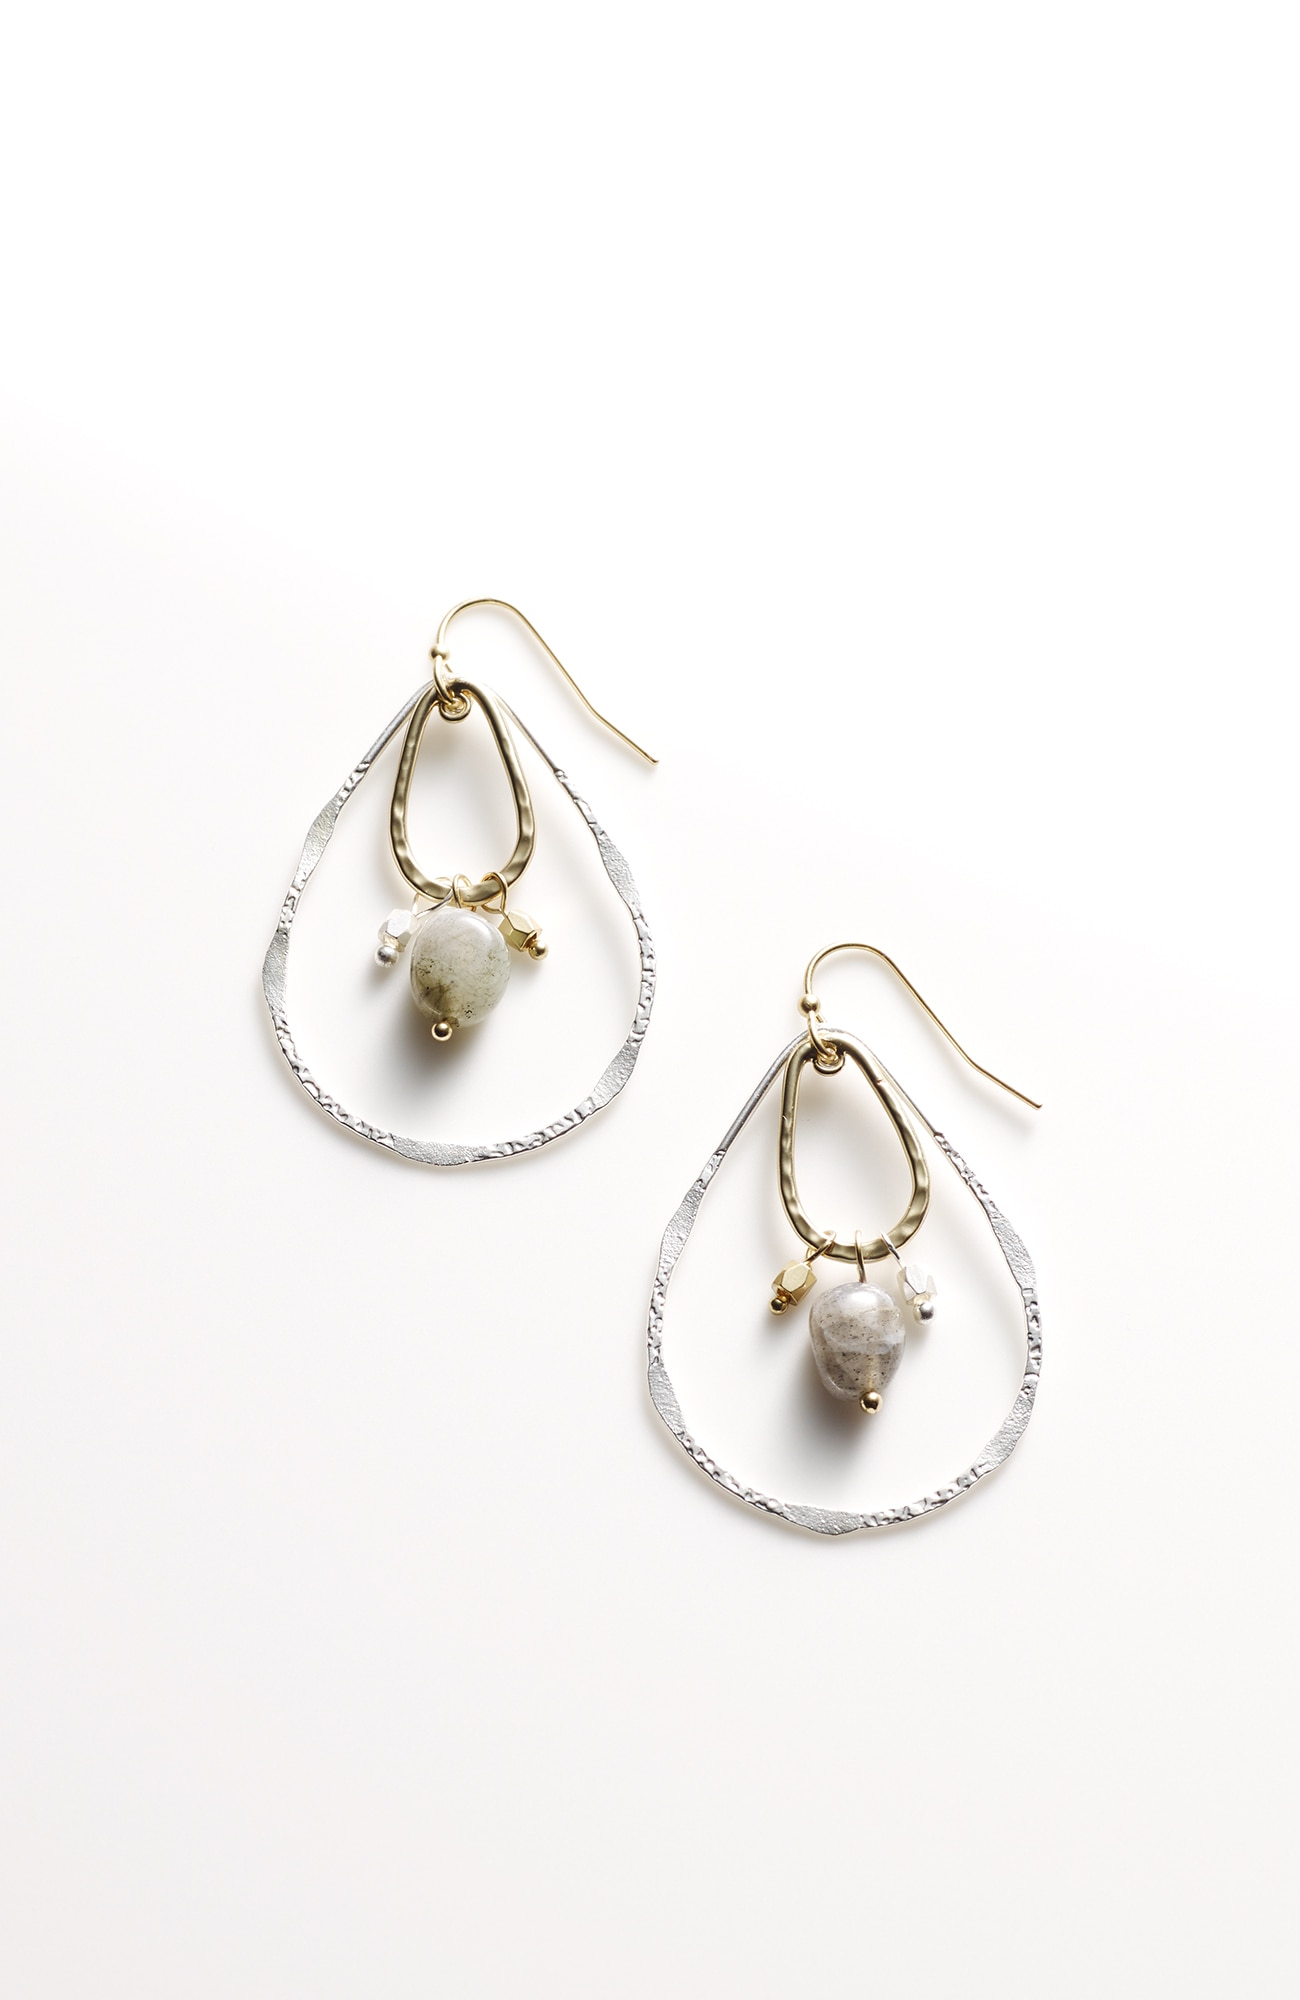 layered-hoops drop earrings